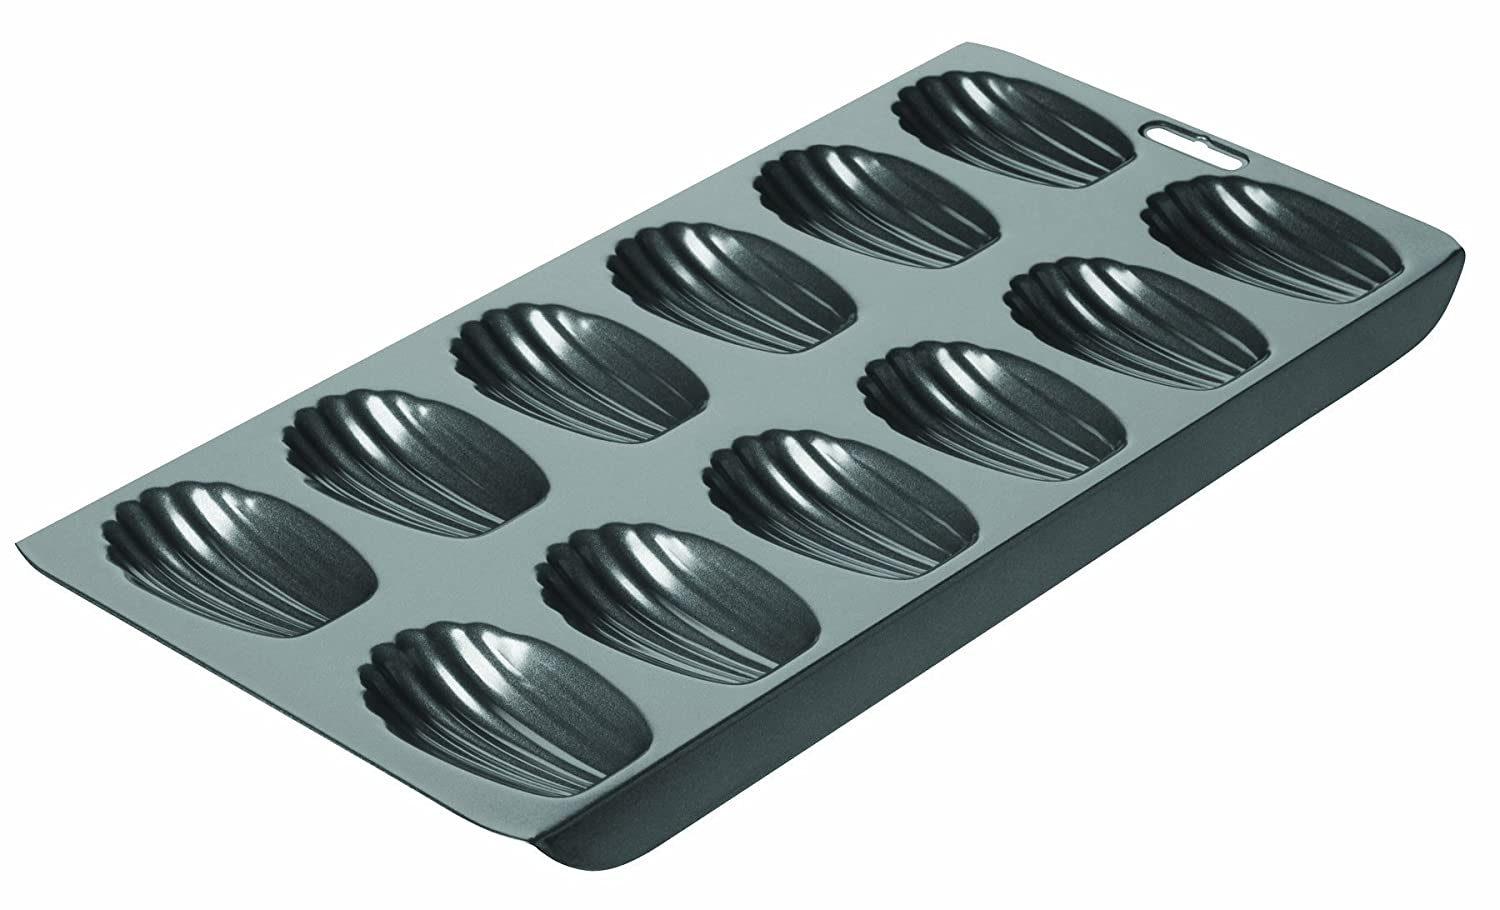 Chicago Metallic Professional 12-Cup Non-Stick Madeleine Pan, 15.75-Inch-by-7.75-Inch 26631